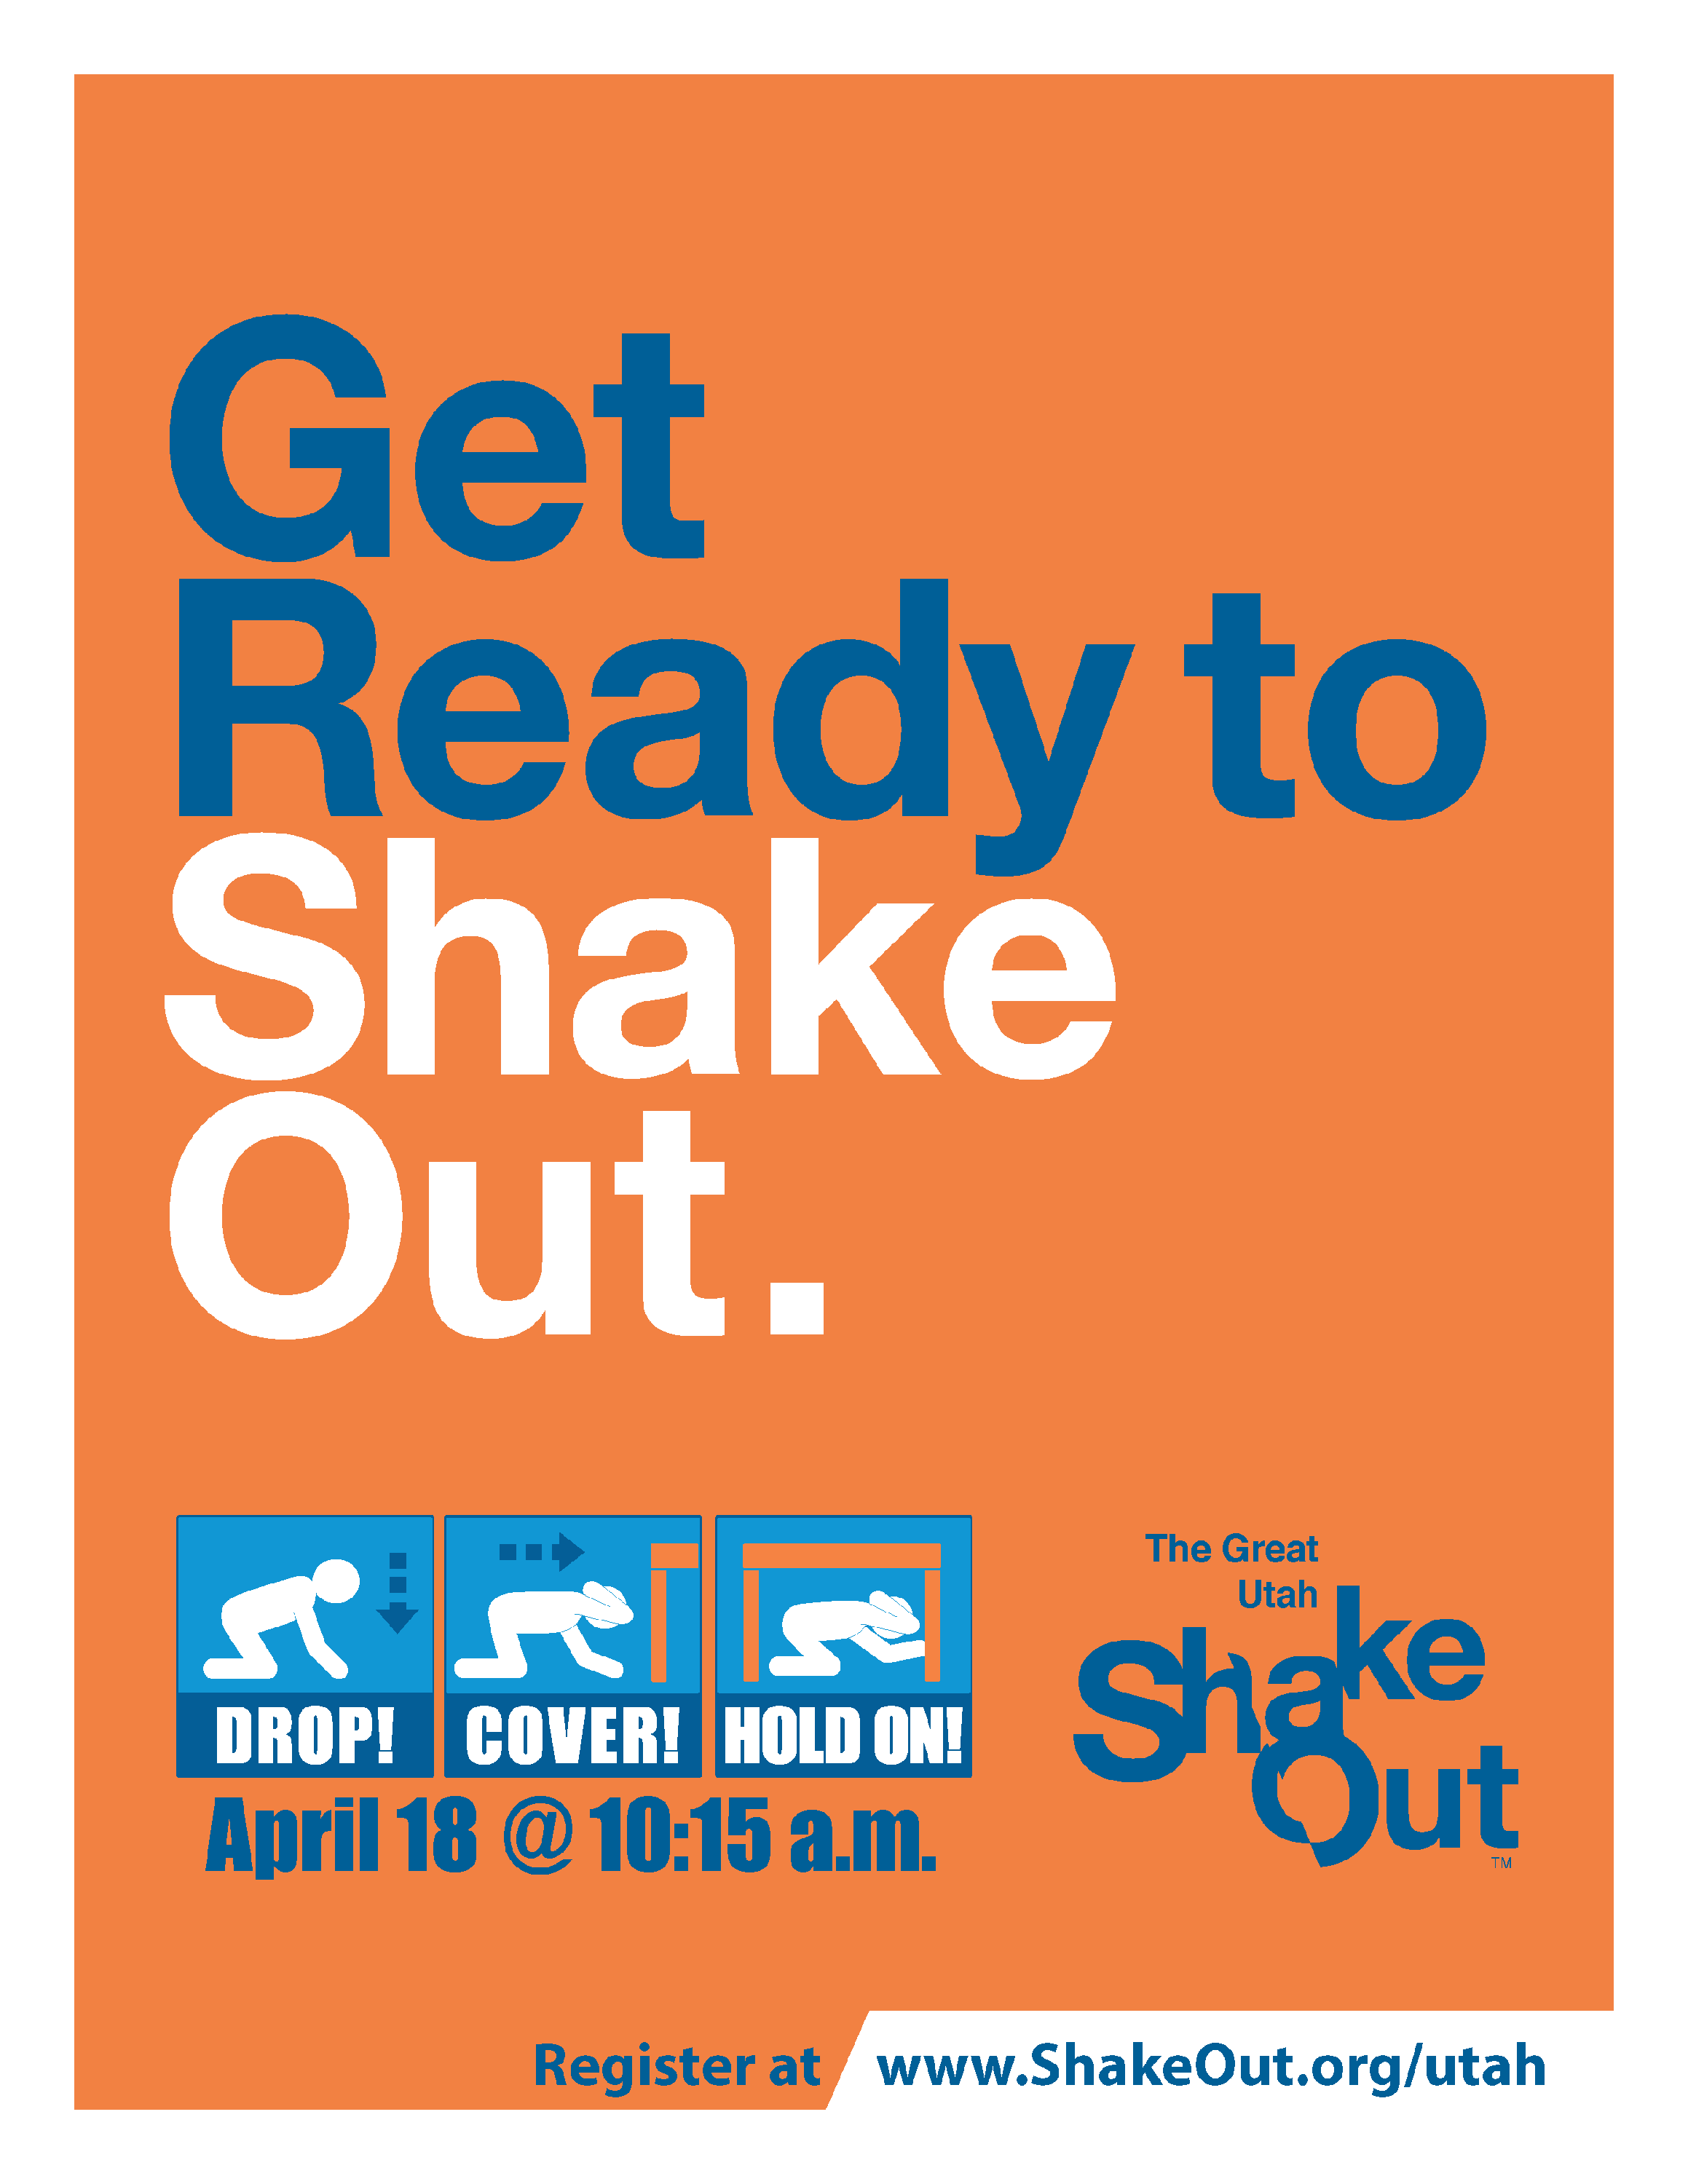 Get ready to shake out. April 18, 2019.